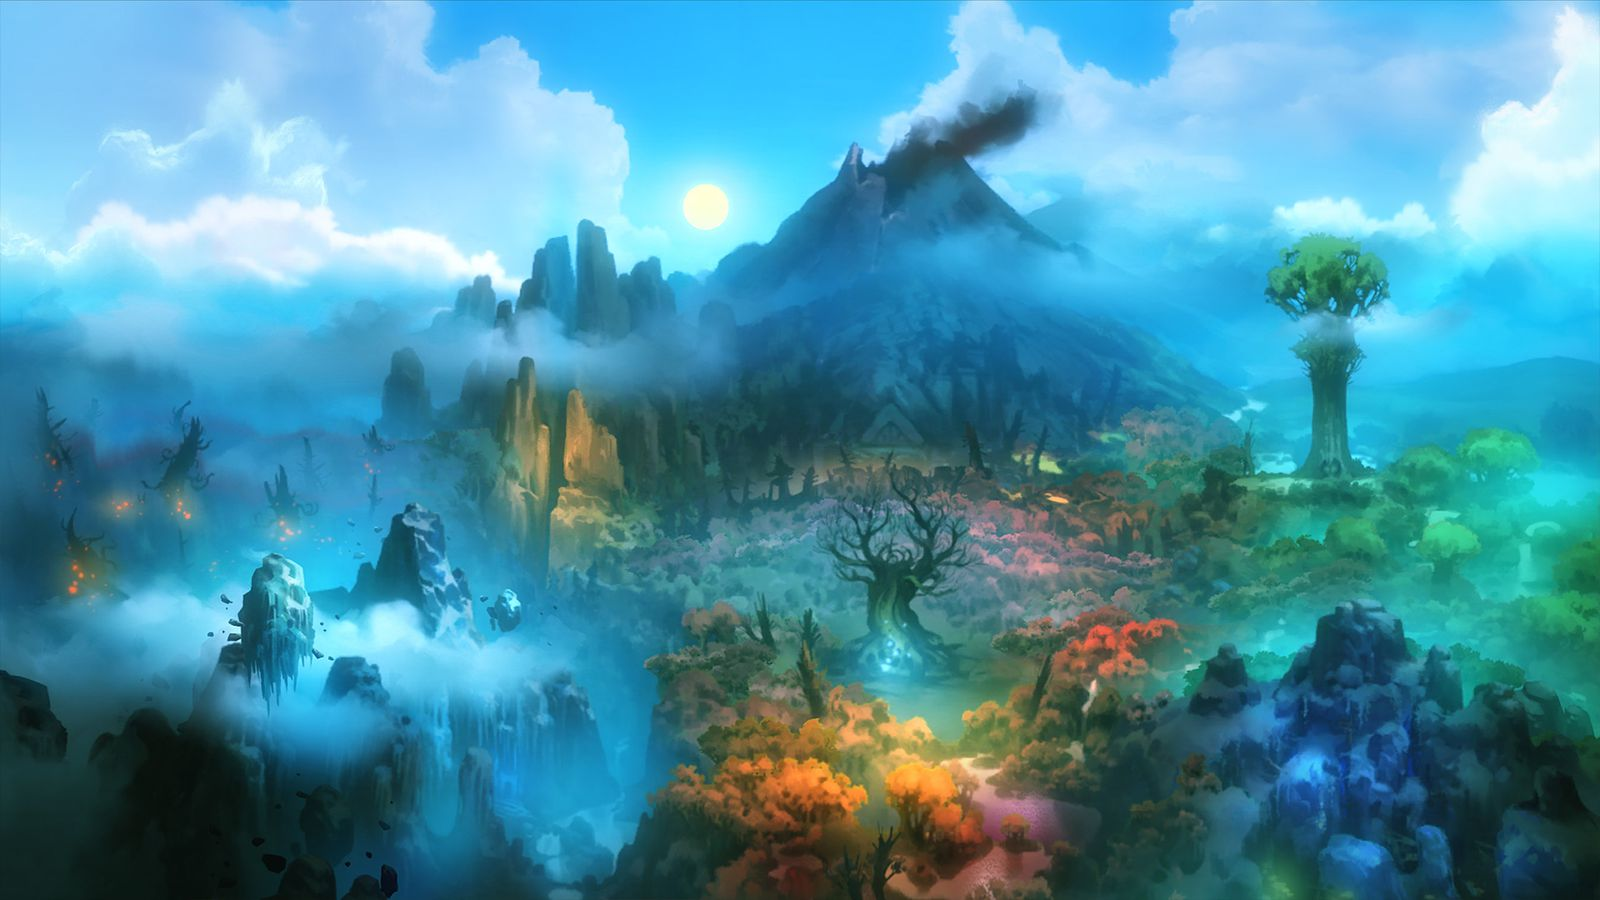 ori blind forest 360 release date Ori and the blind forest will release on march 11 for the pc and xbox one, the game's official twitter account has announced.